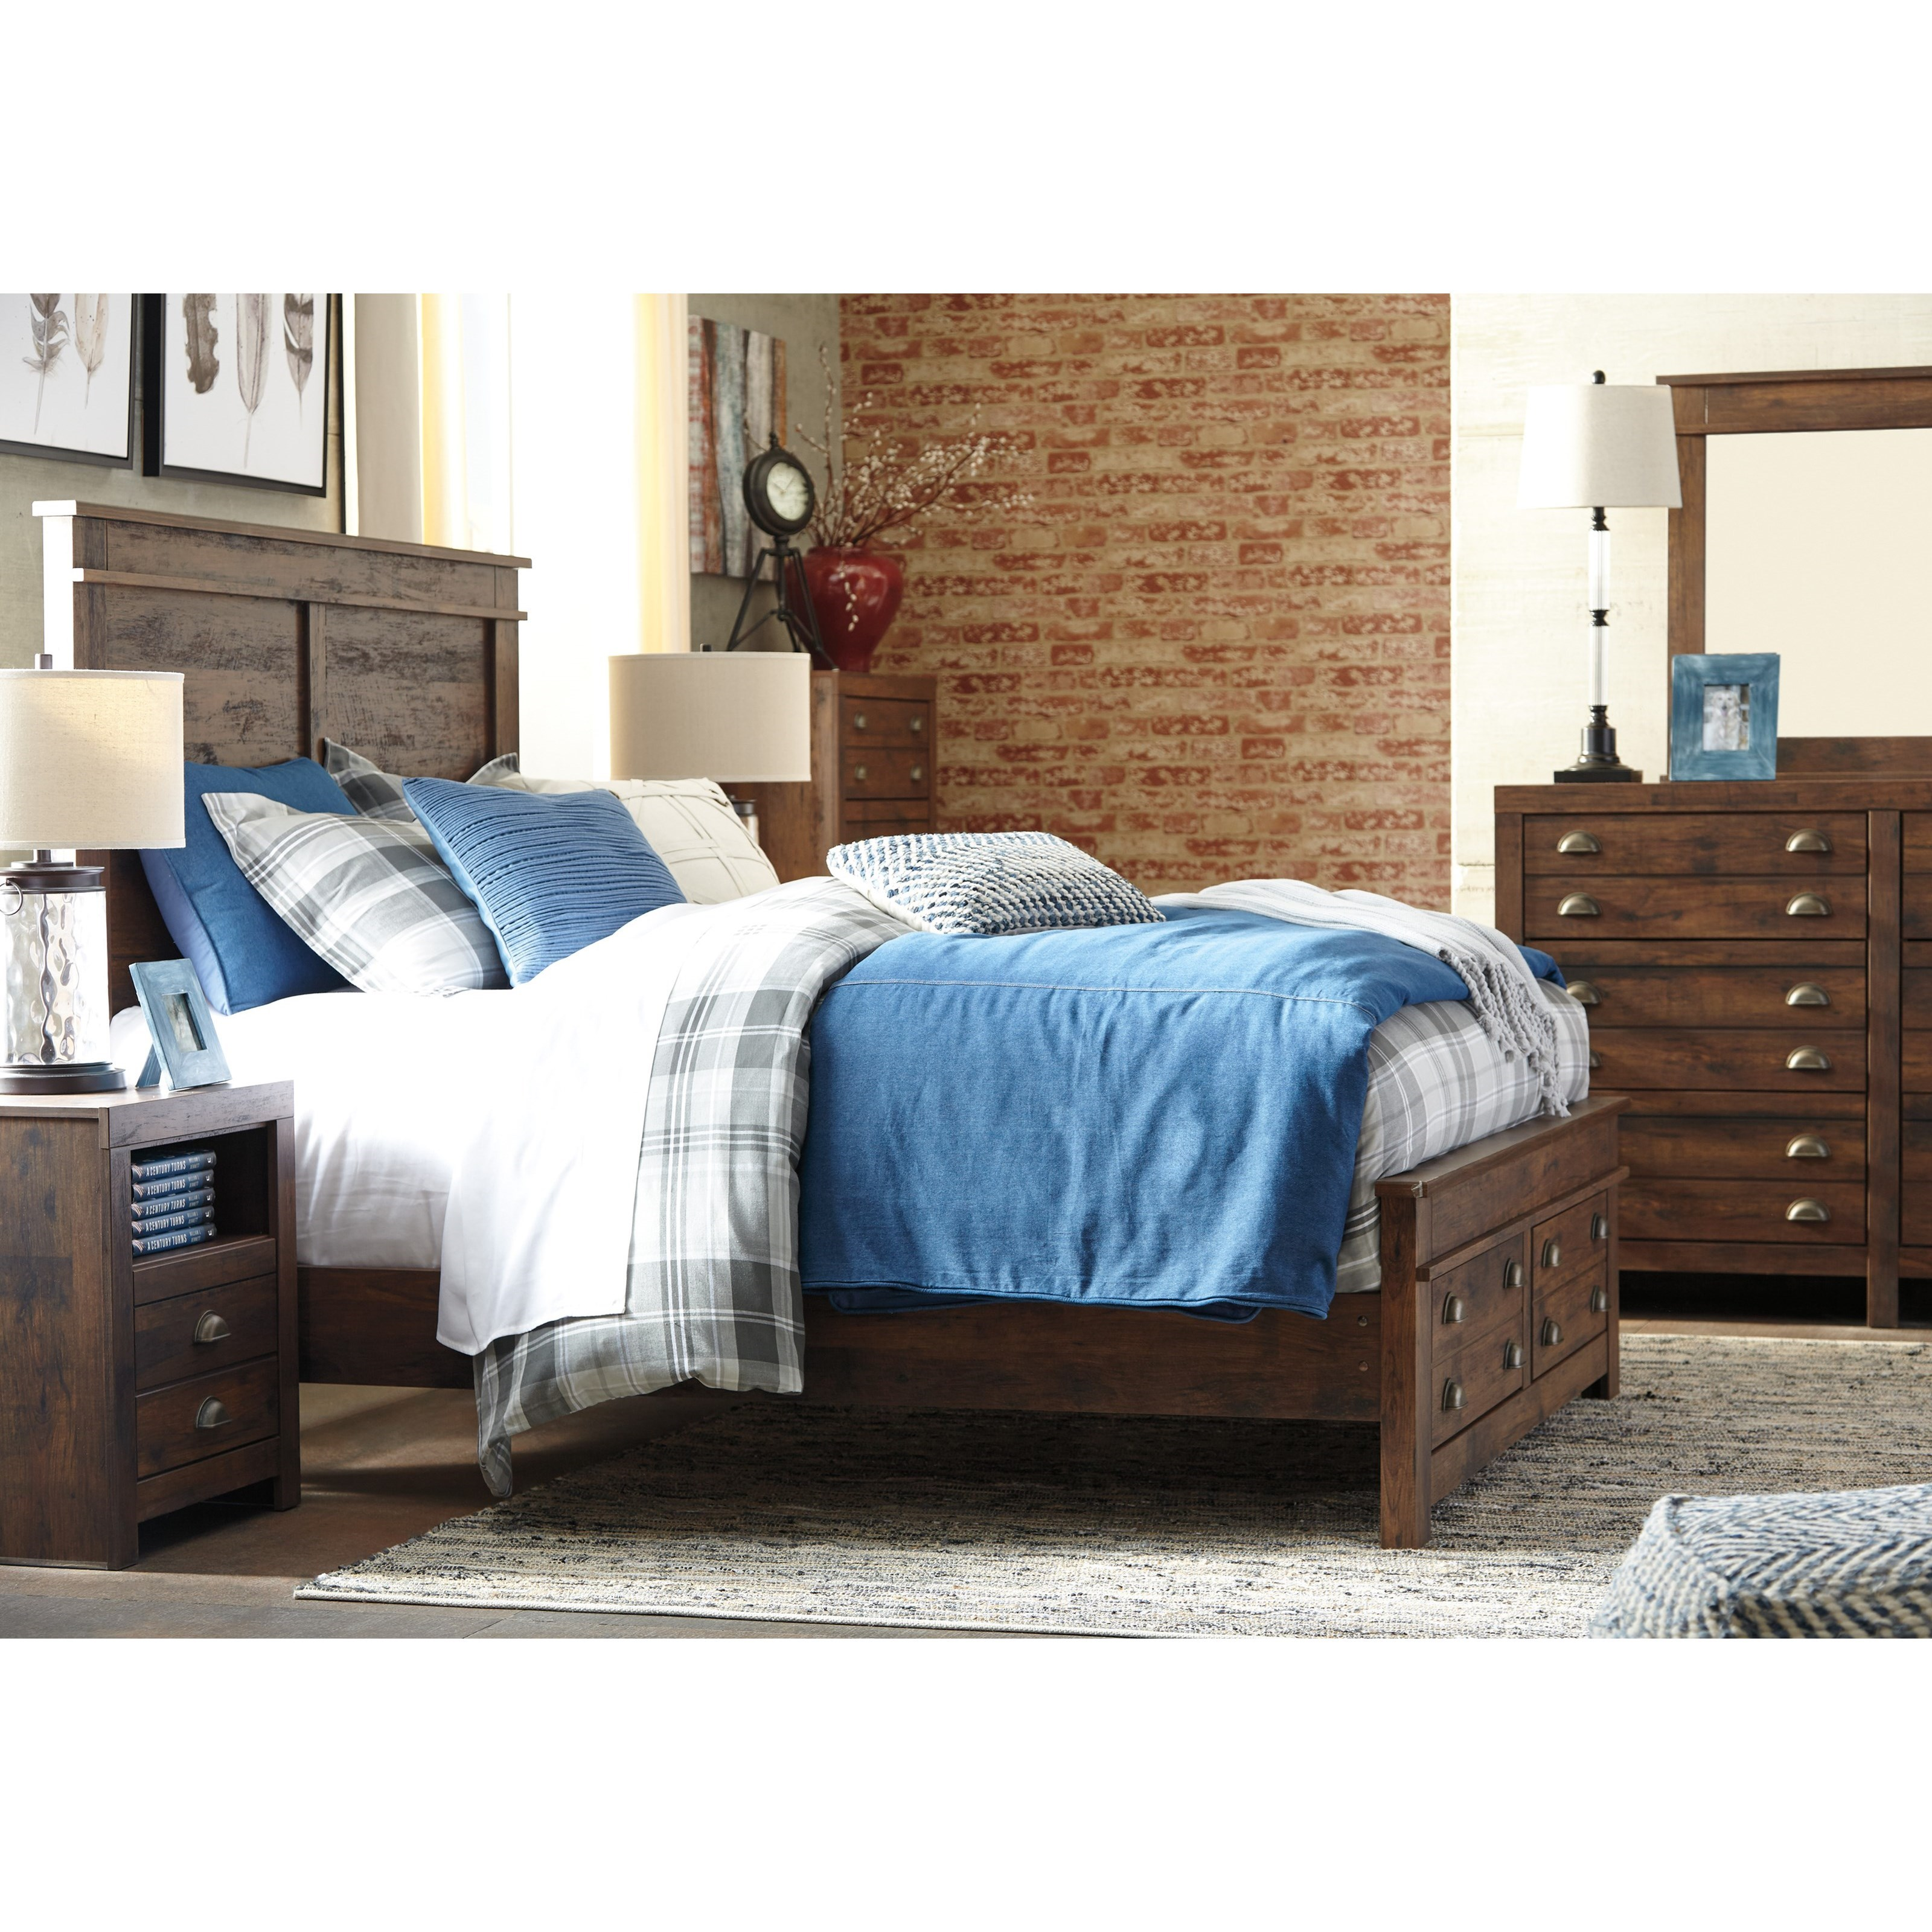 Signature Design By Ashley Hammerstead Queen Storage Bed With Two Drawers Conlin 39 S Furniture